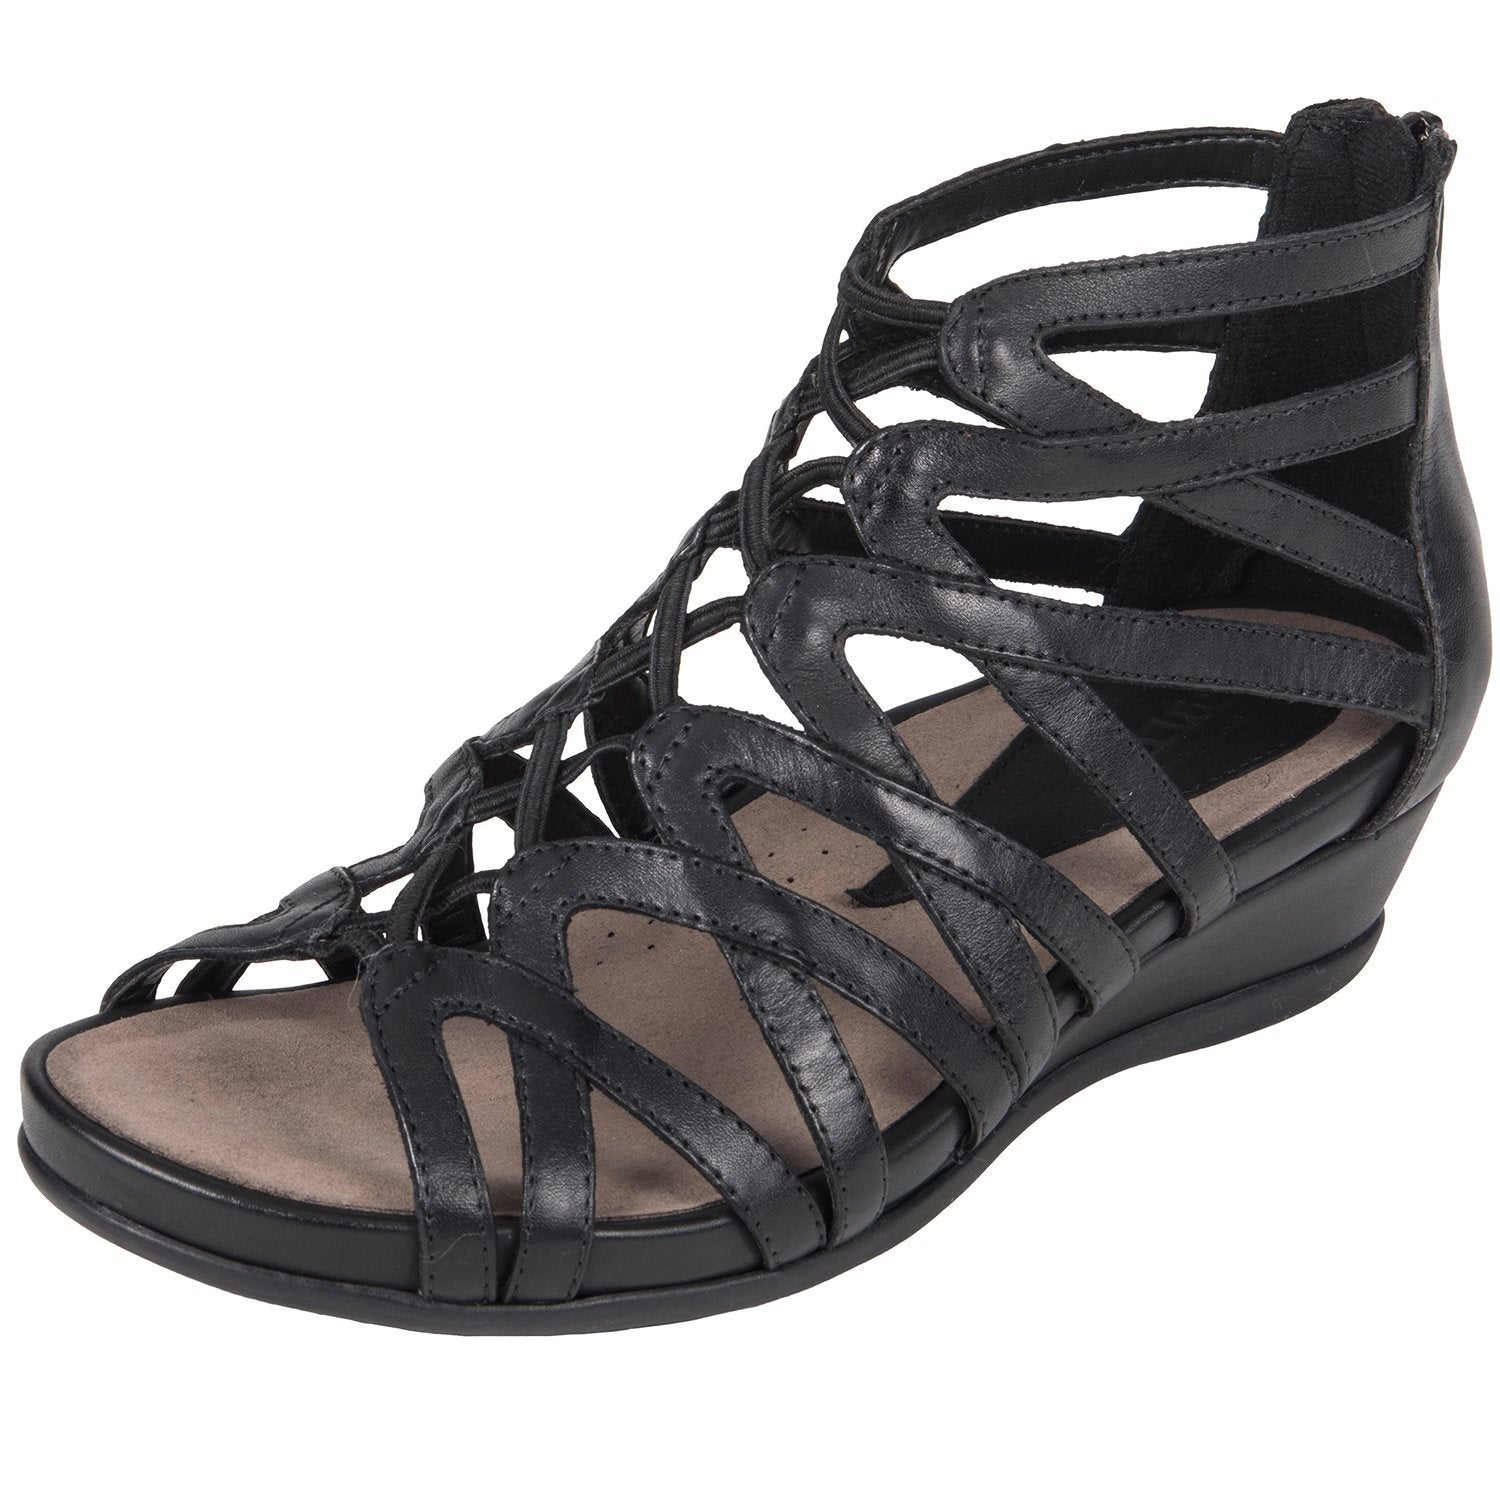 6c762db3bf6c Shop Earth Juno Women s Sandal - Ships To Canada - Overstock - 20522160